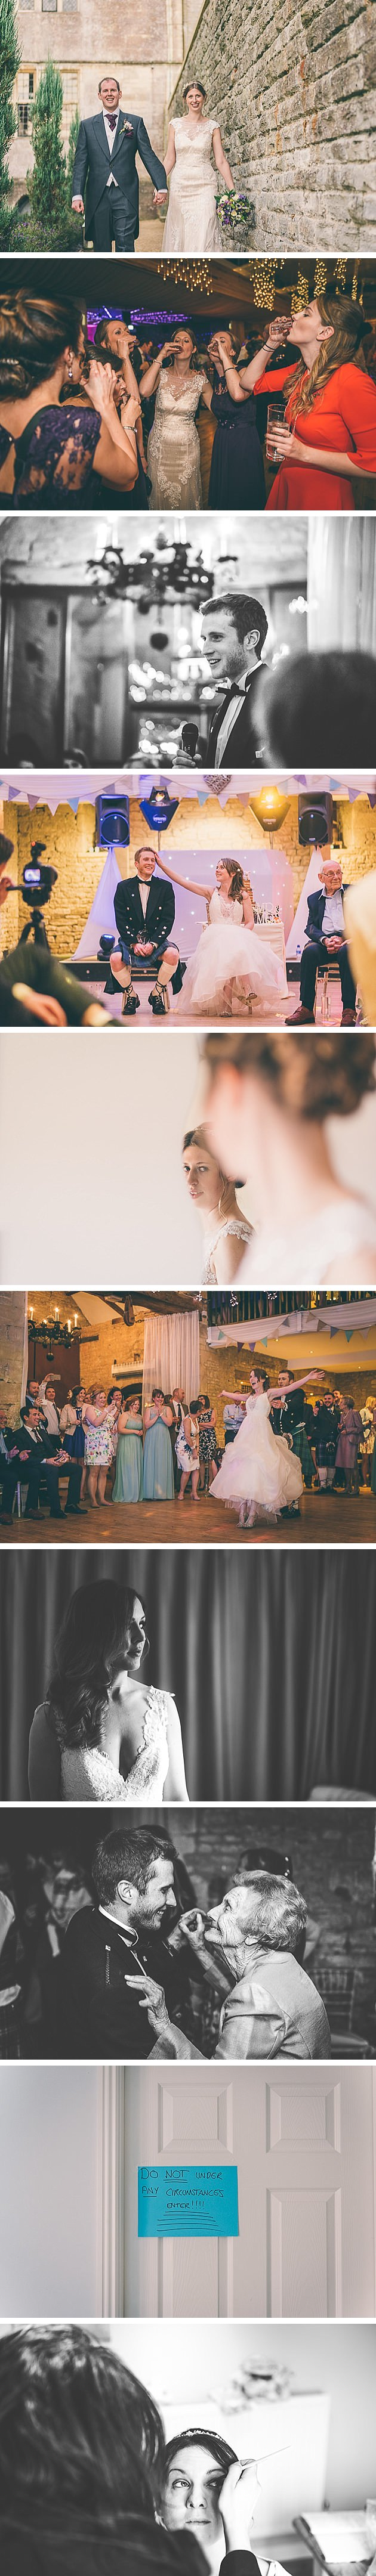 Cotswold Wedding Highlights 2016